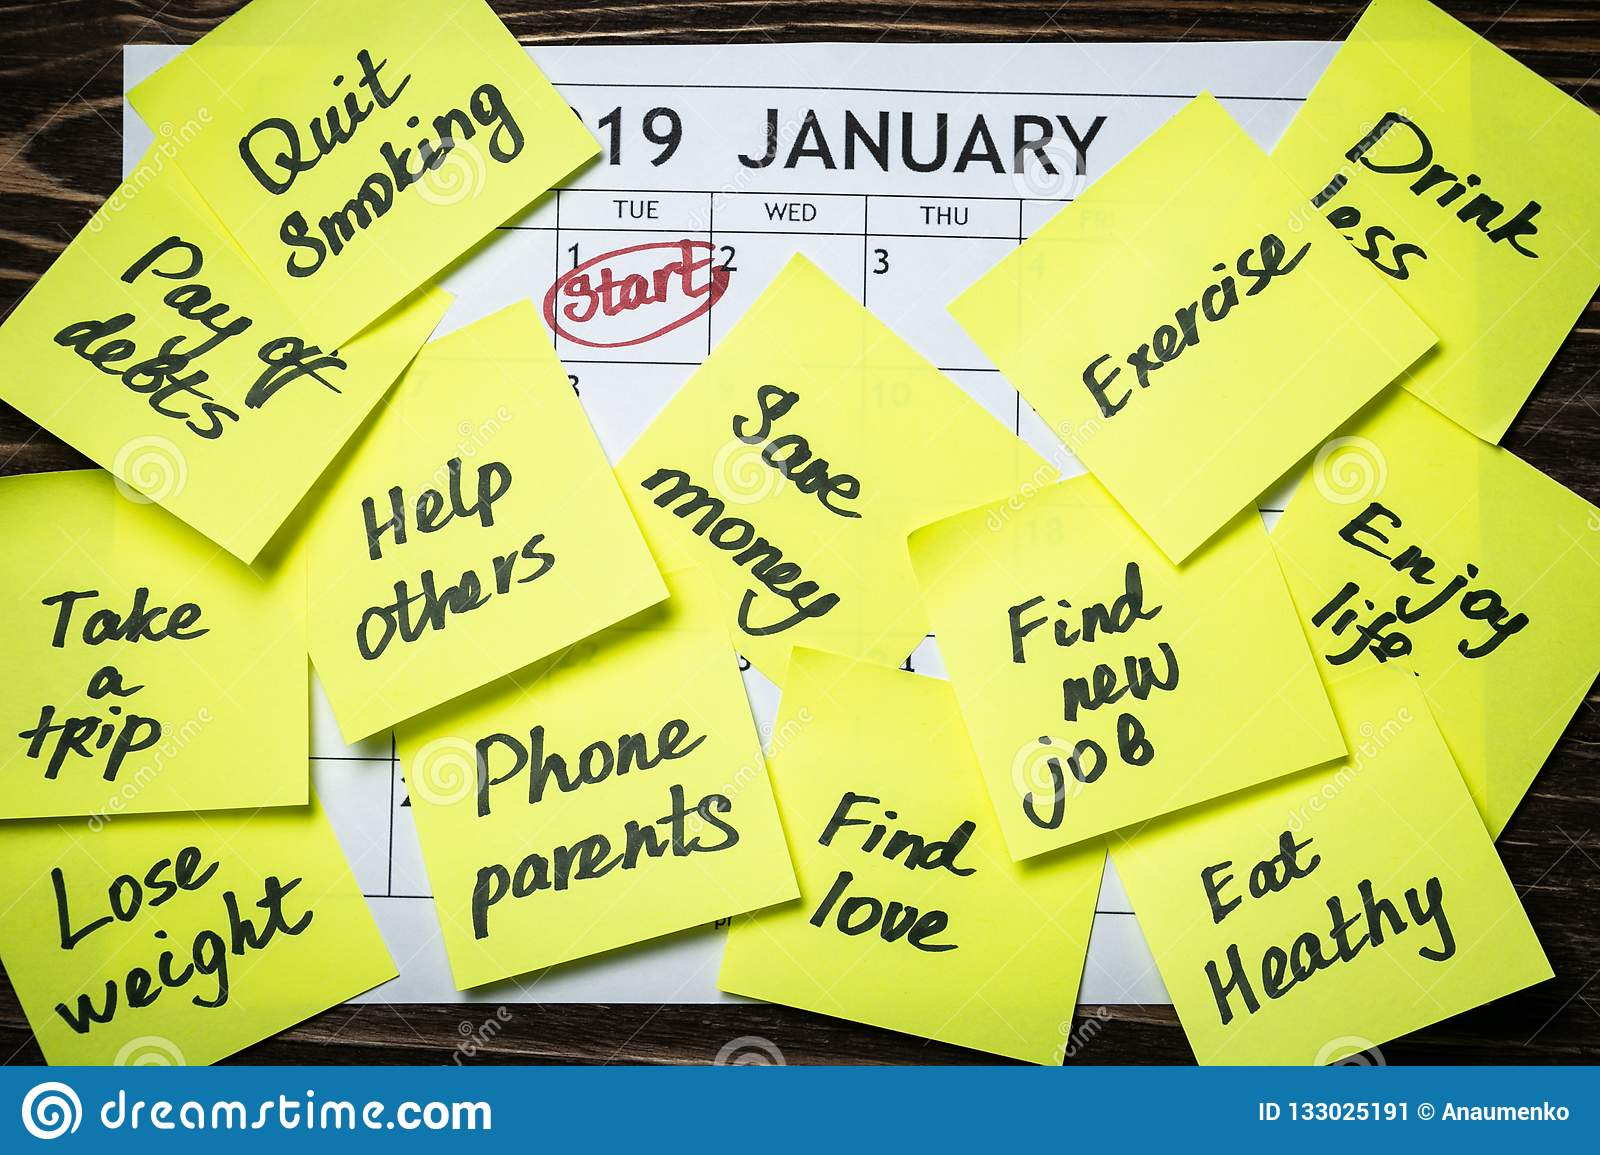 New Year Resolutions Concept - Resolutions On Post-It Notes